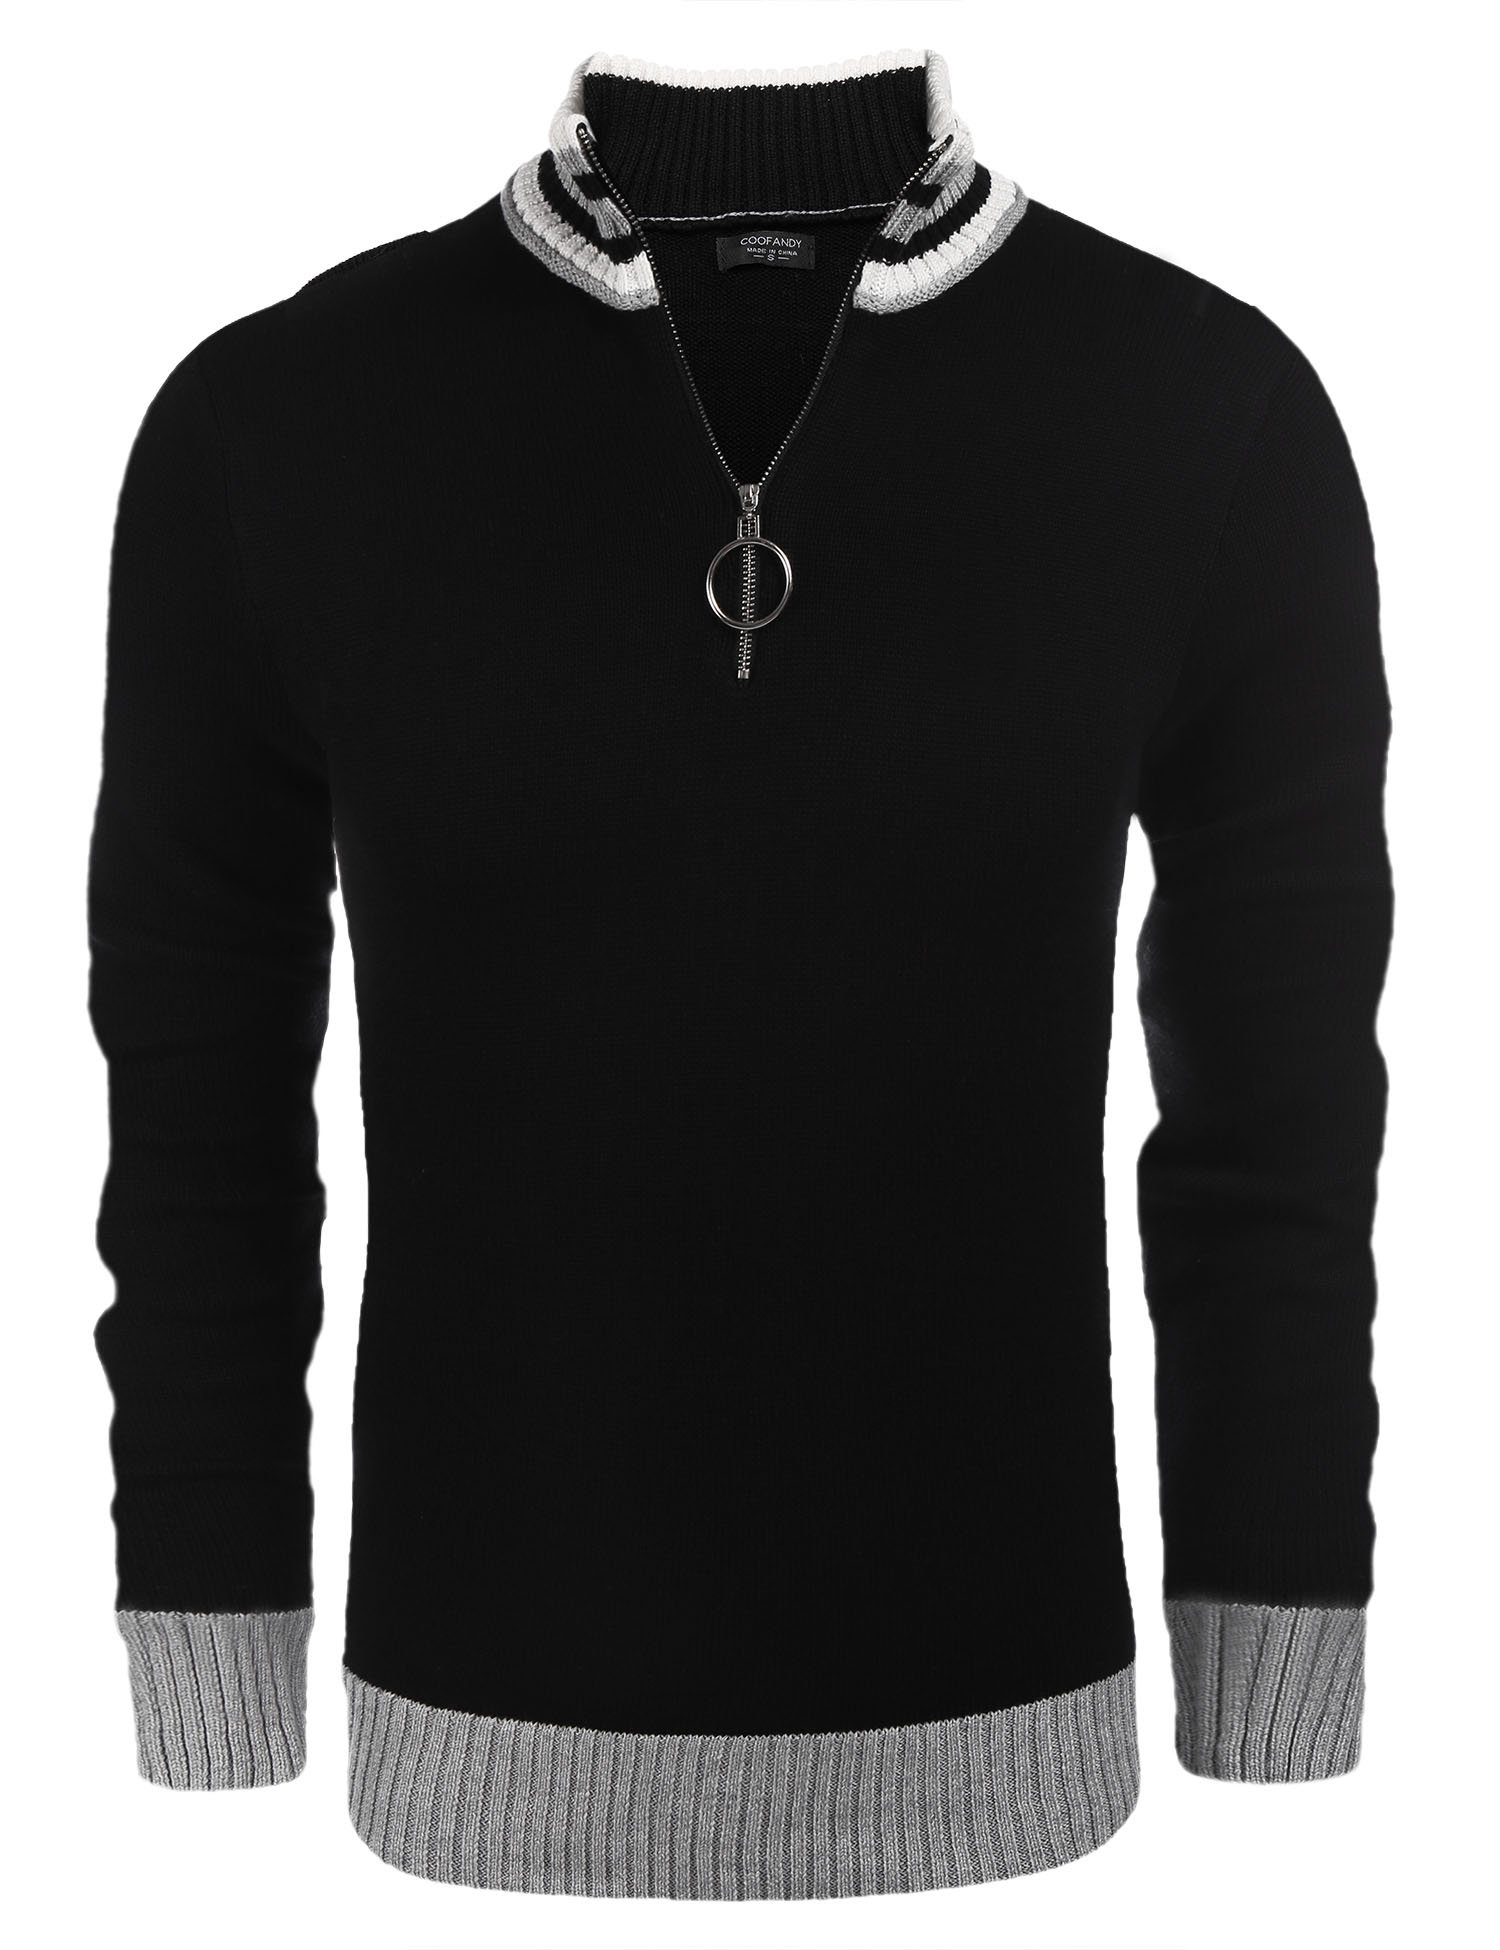 COOFANDY Men's Business Casual Crew Neck Long Sleeve Sweater Quarter-Zip Pullover by COOFANDY (Image #2)